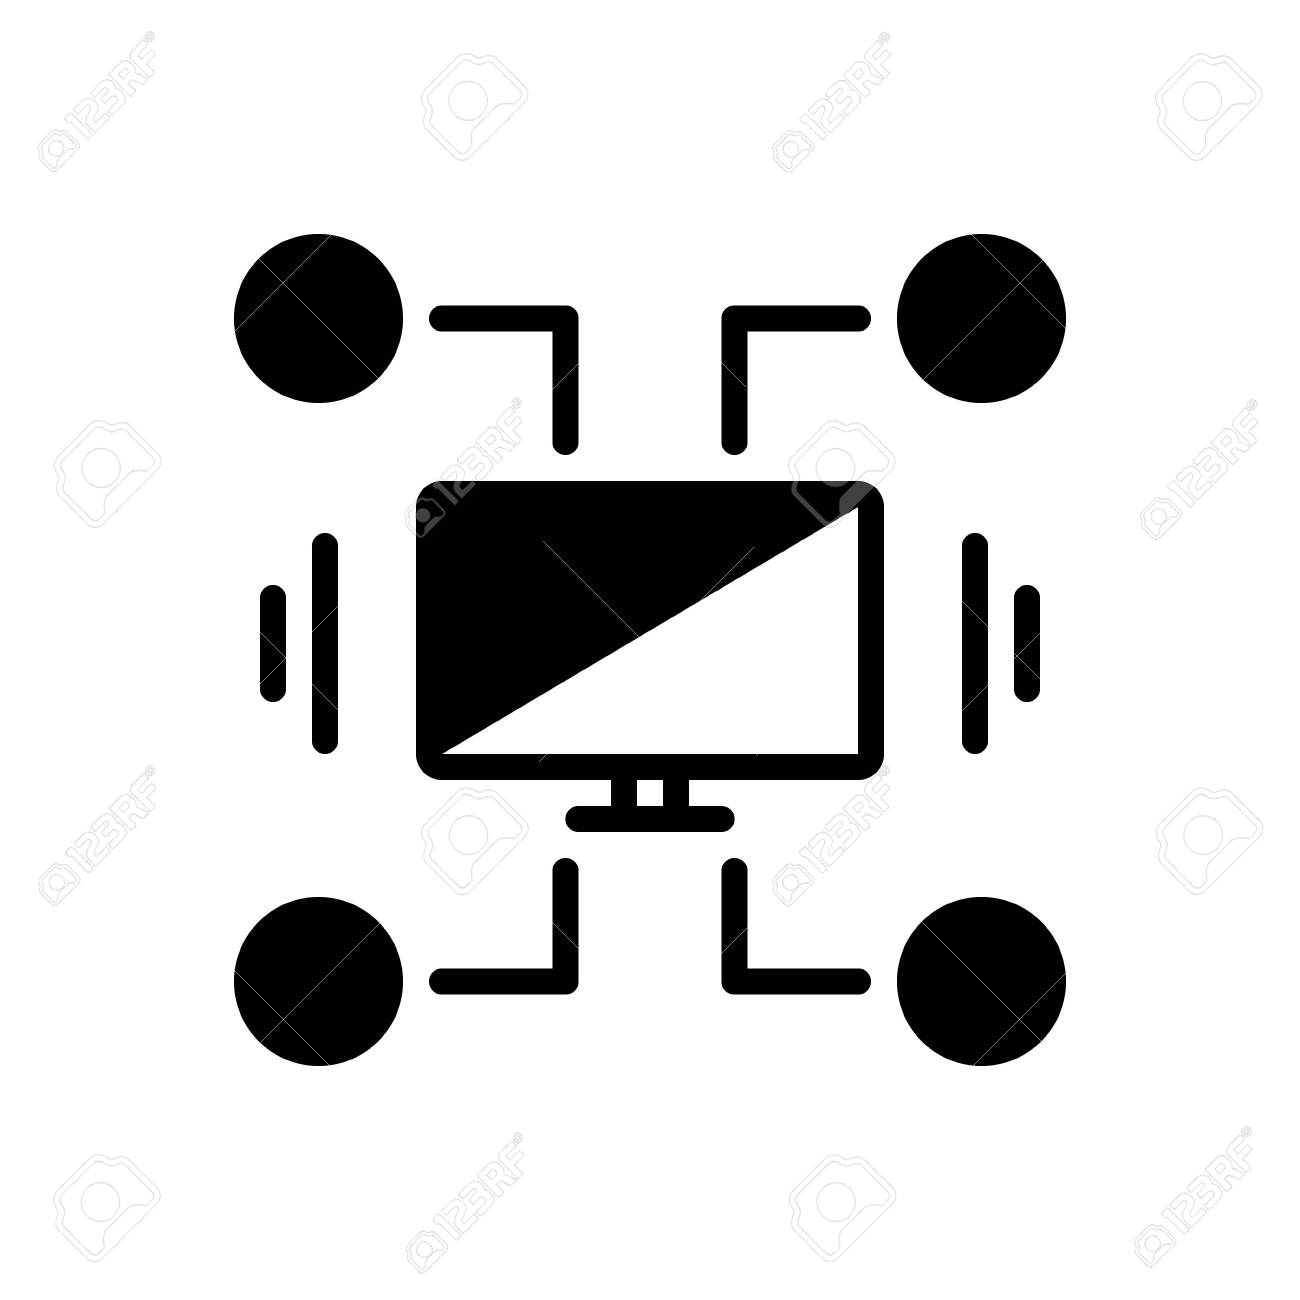 Icon for cobol,application - 137994518